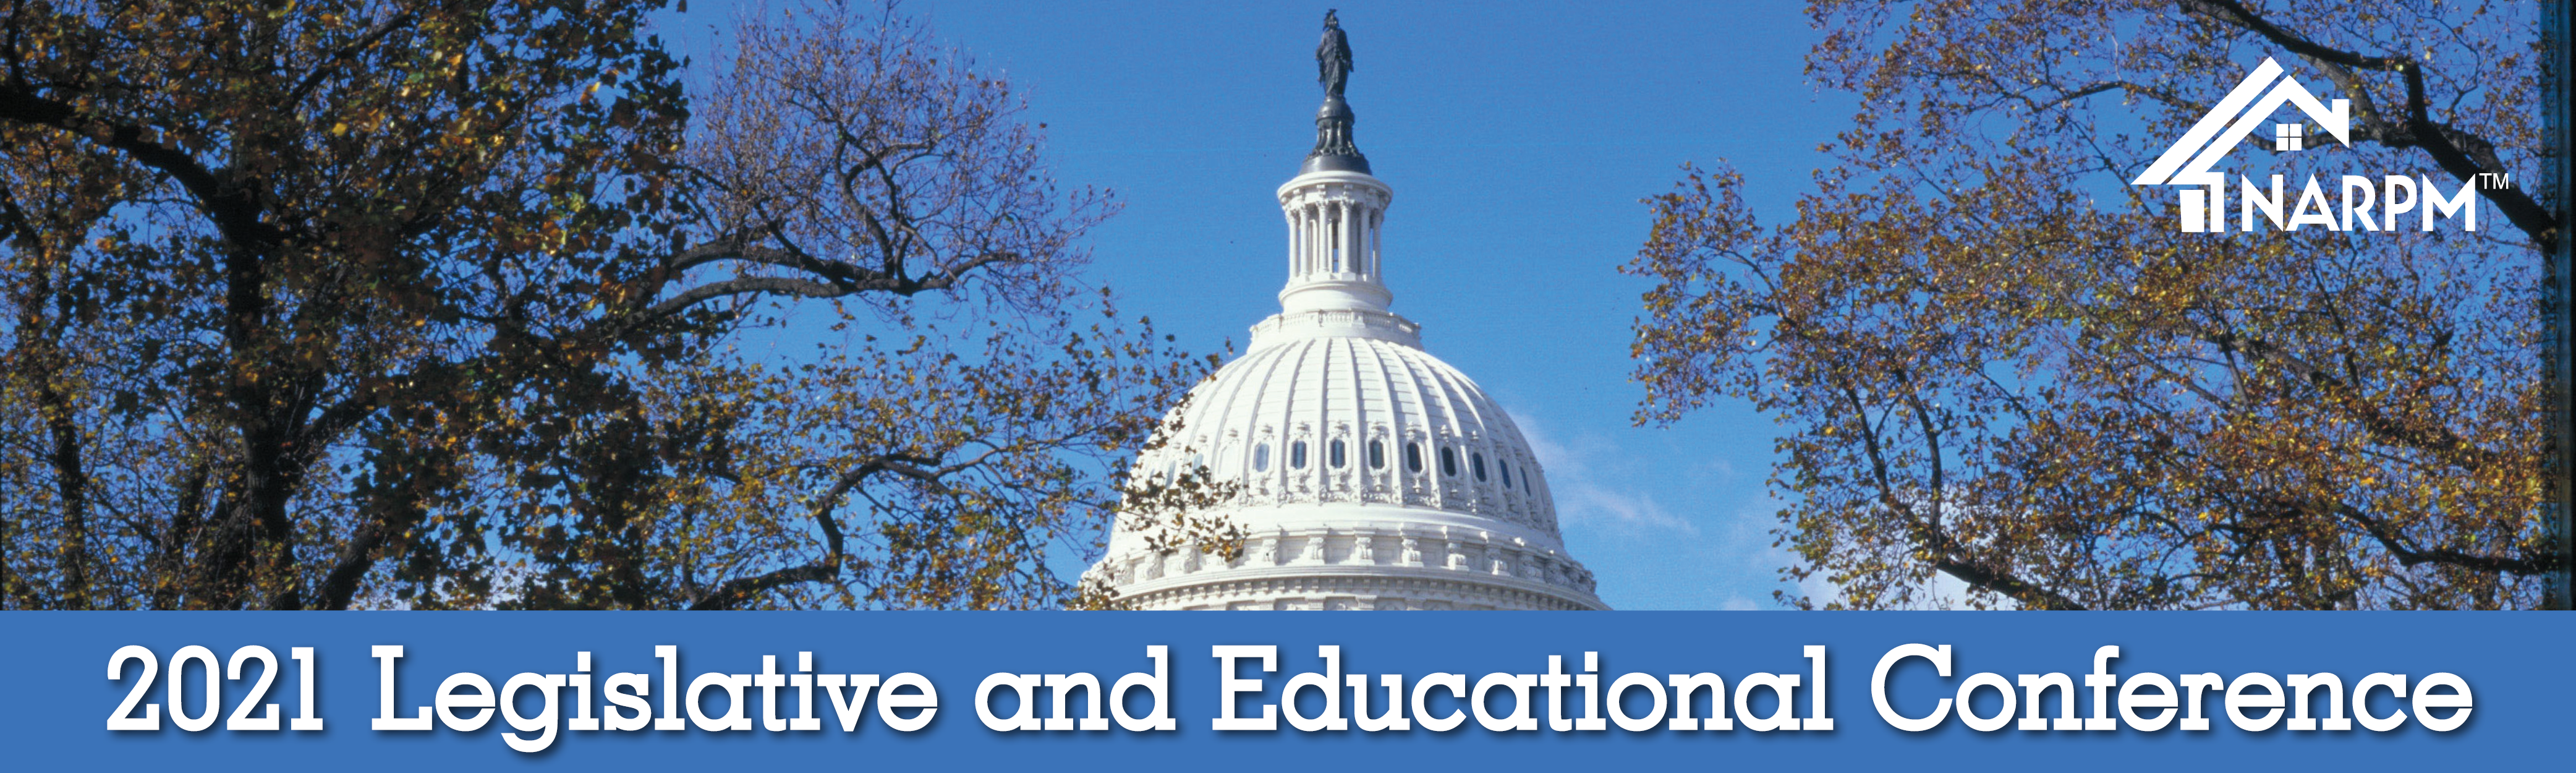 2021 Legislative and Education Conference banner